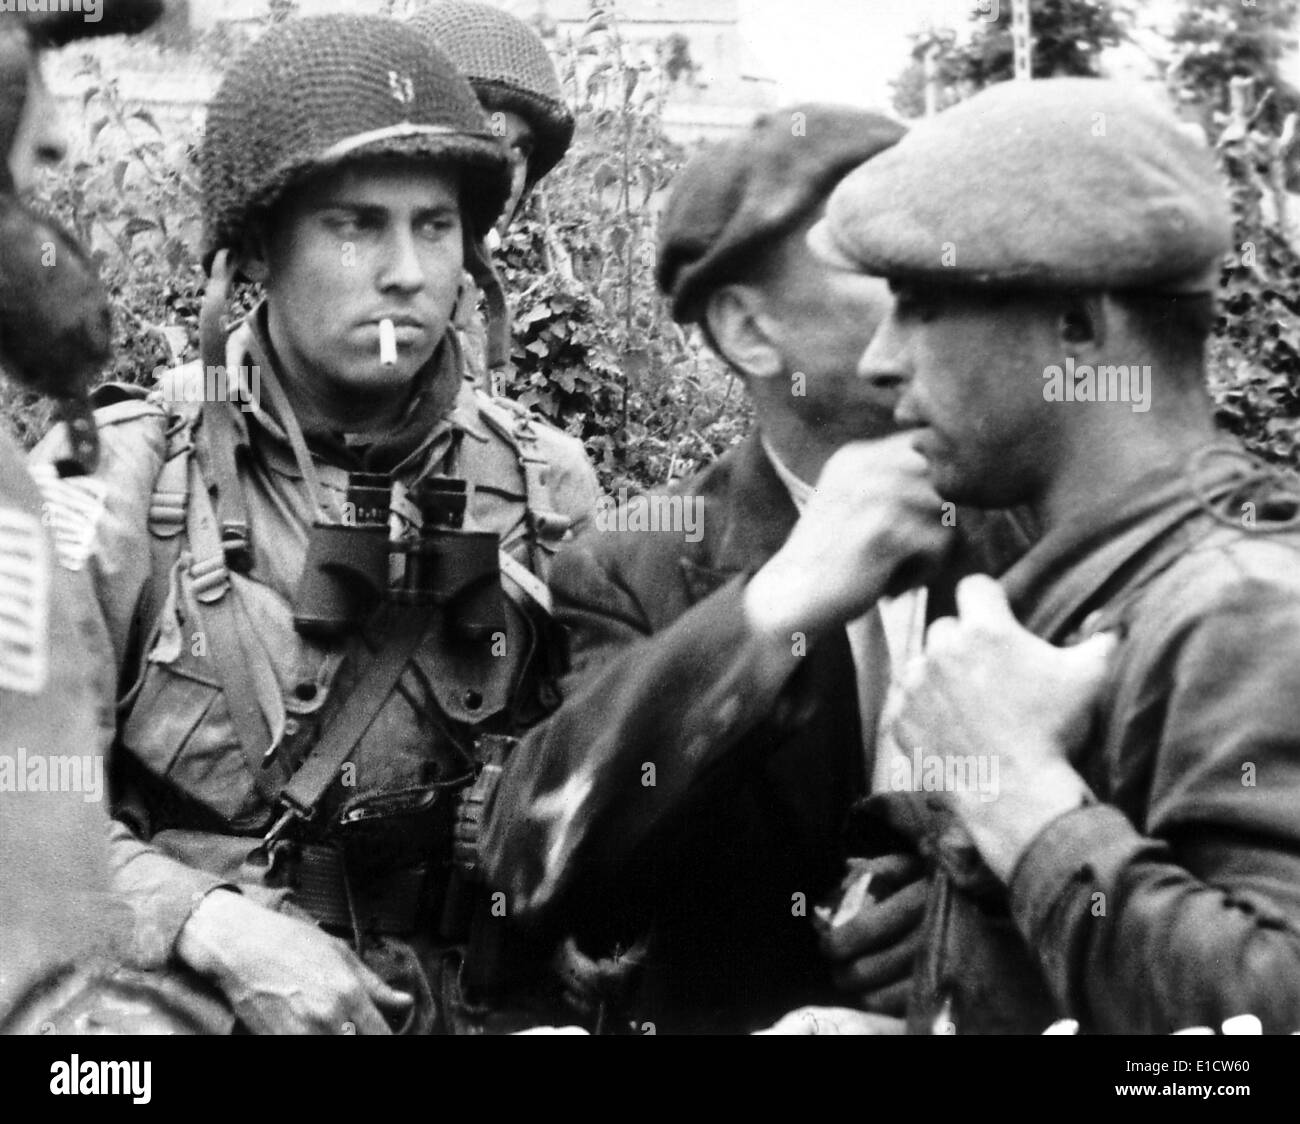 French civilians with american paratroopers who jumped into normandy on d day june 6 1944 france world war 2